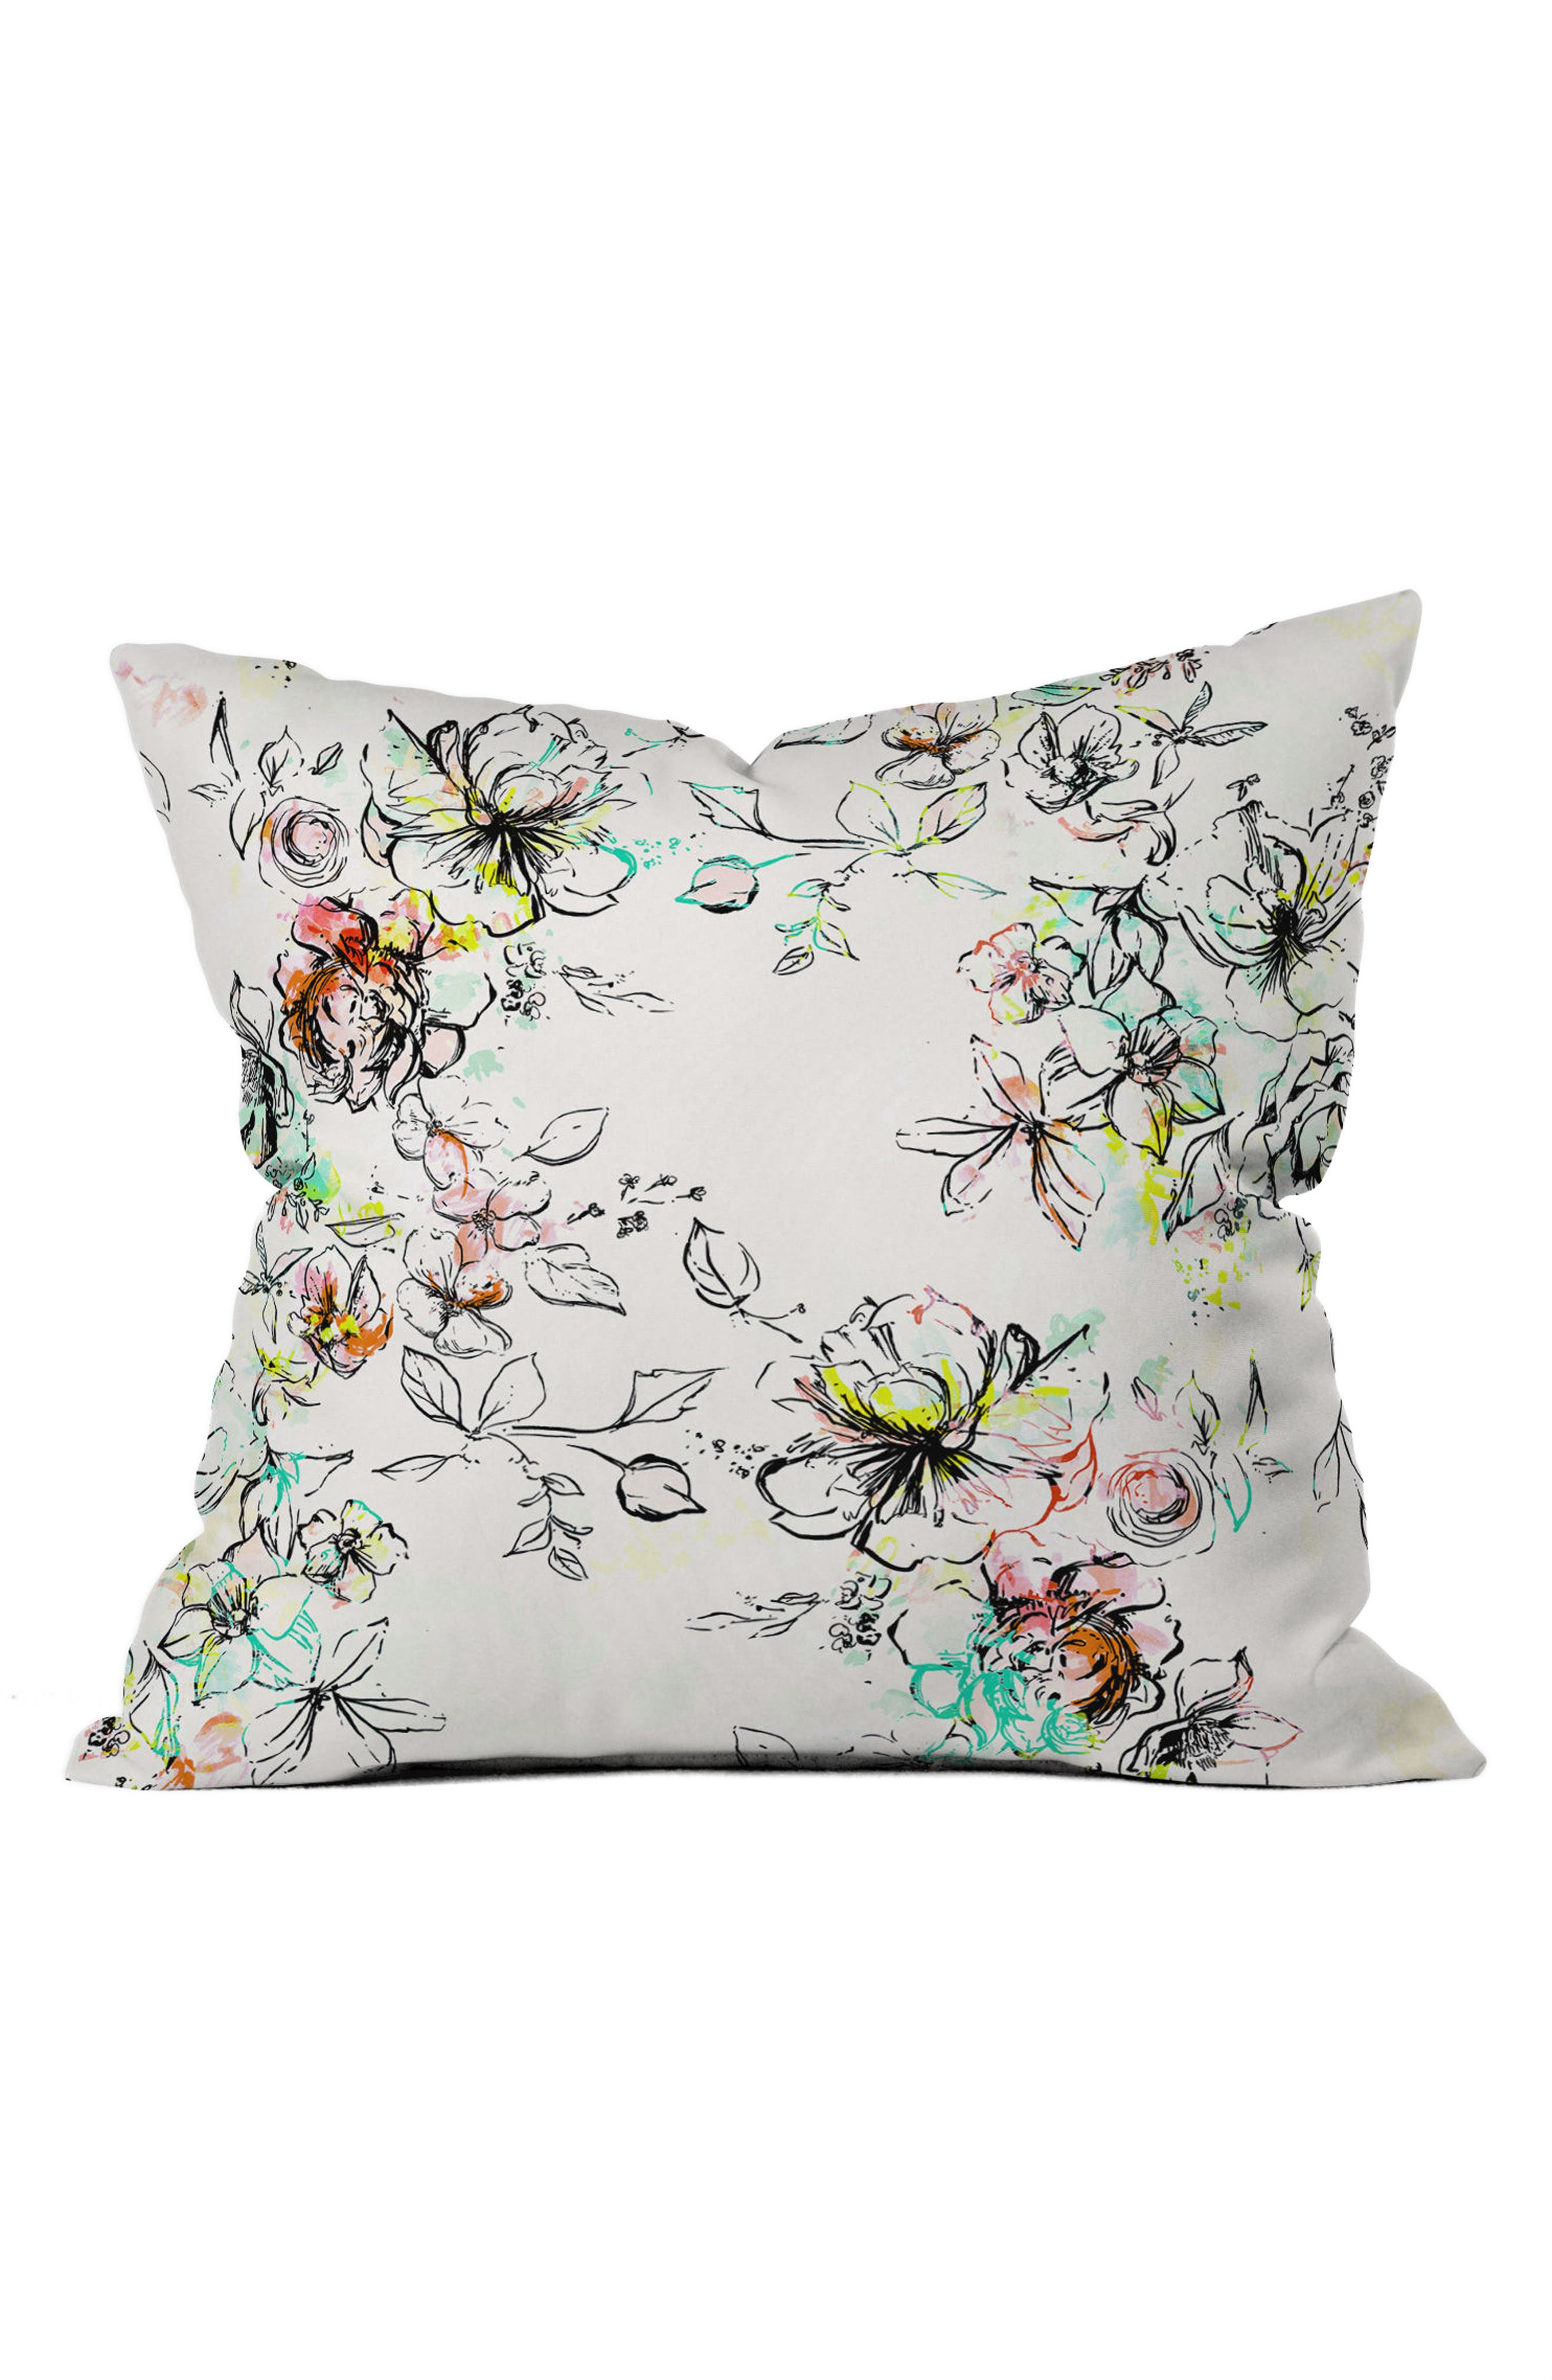 Alternate Image 1 Selected - Deny Designs Floral Pillow